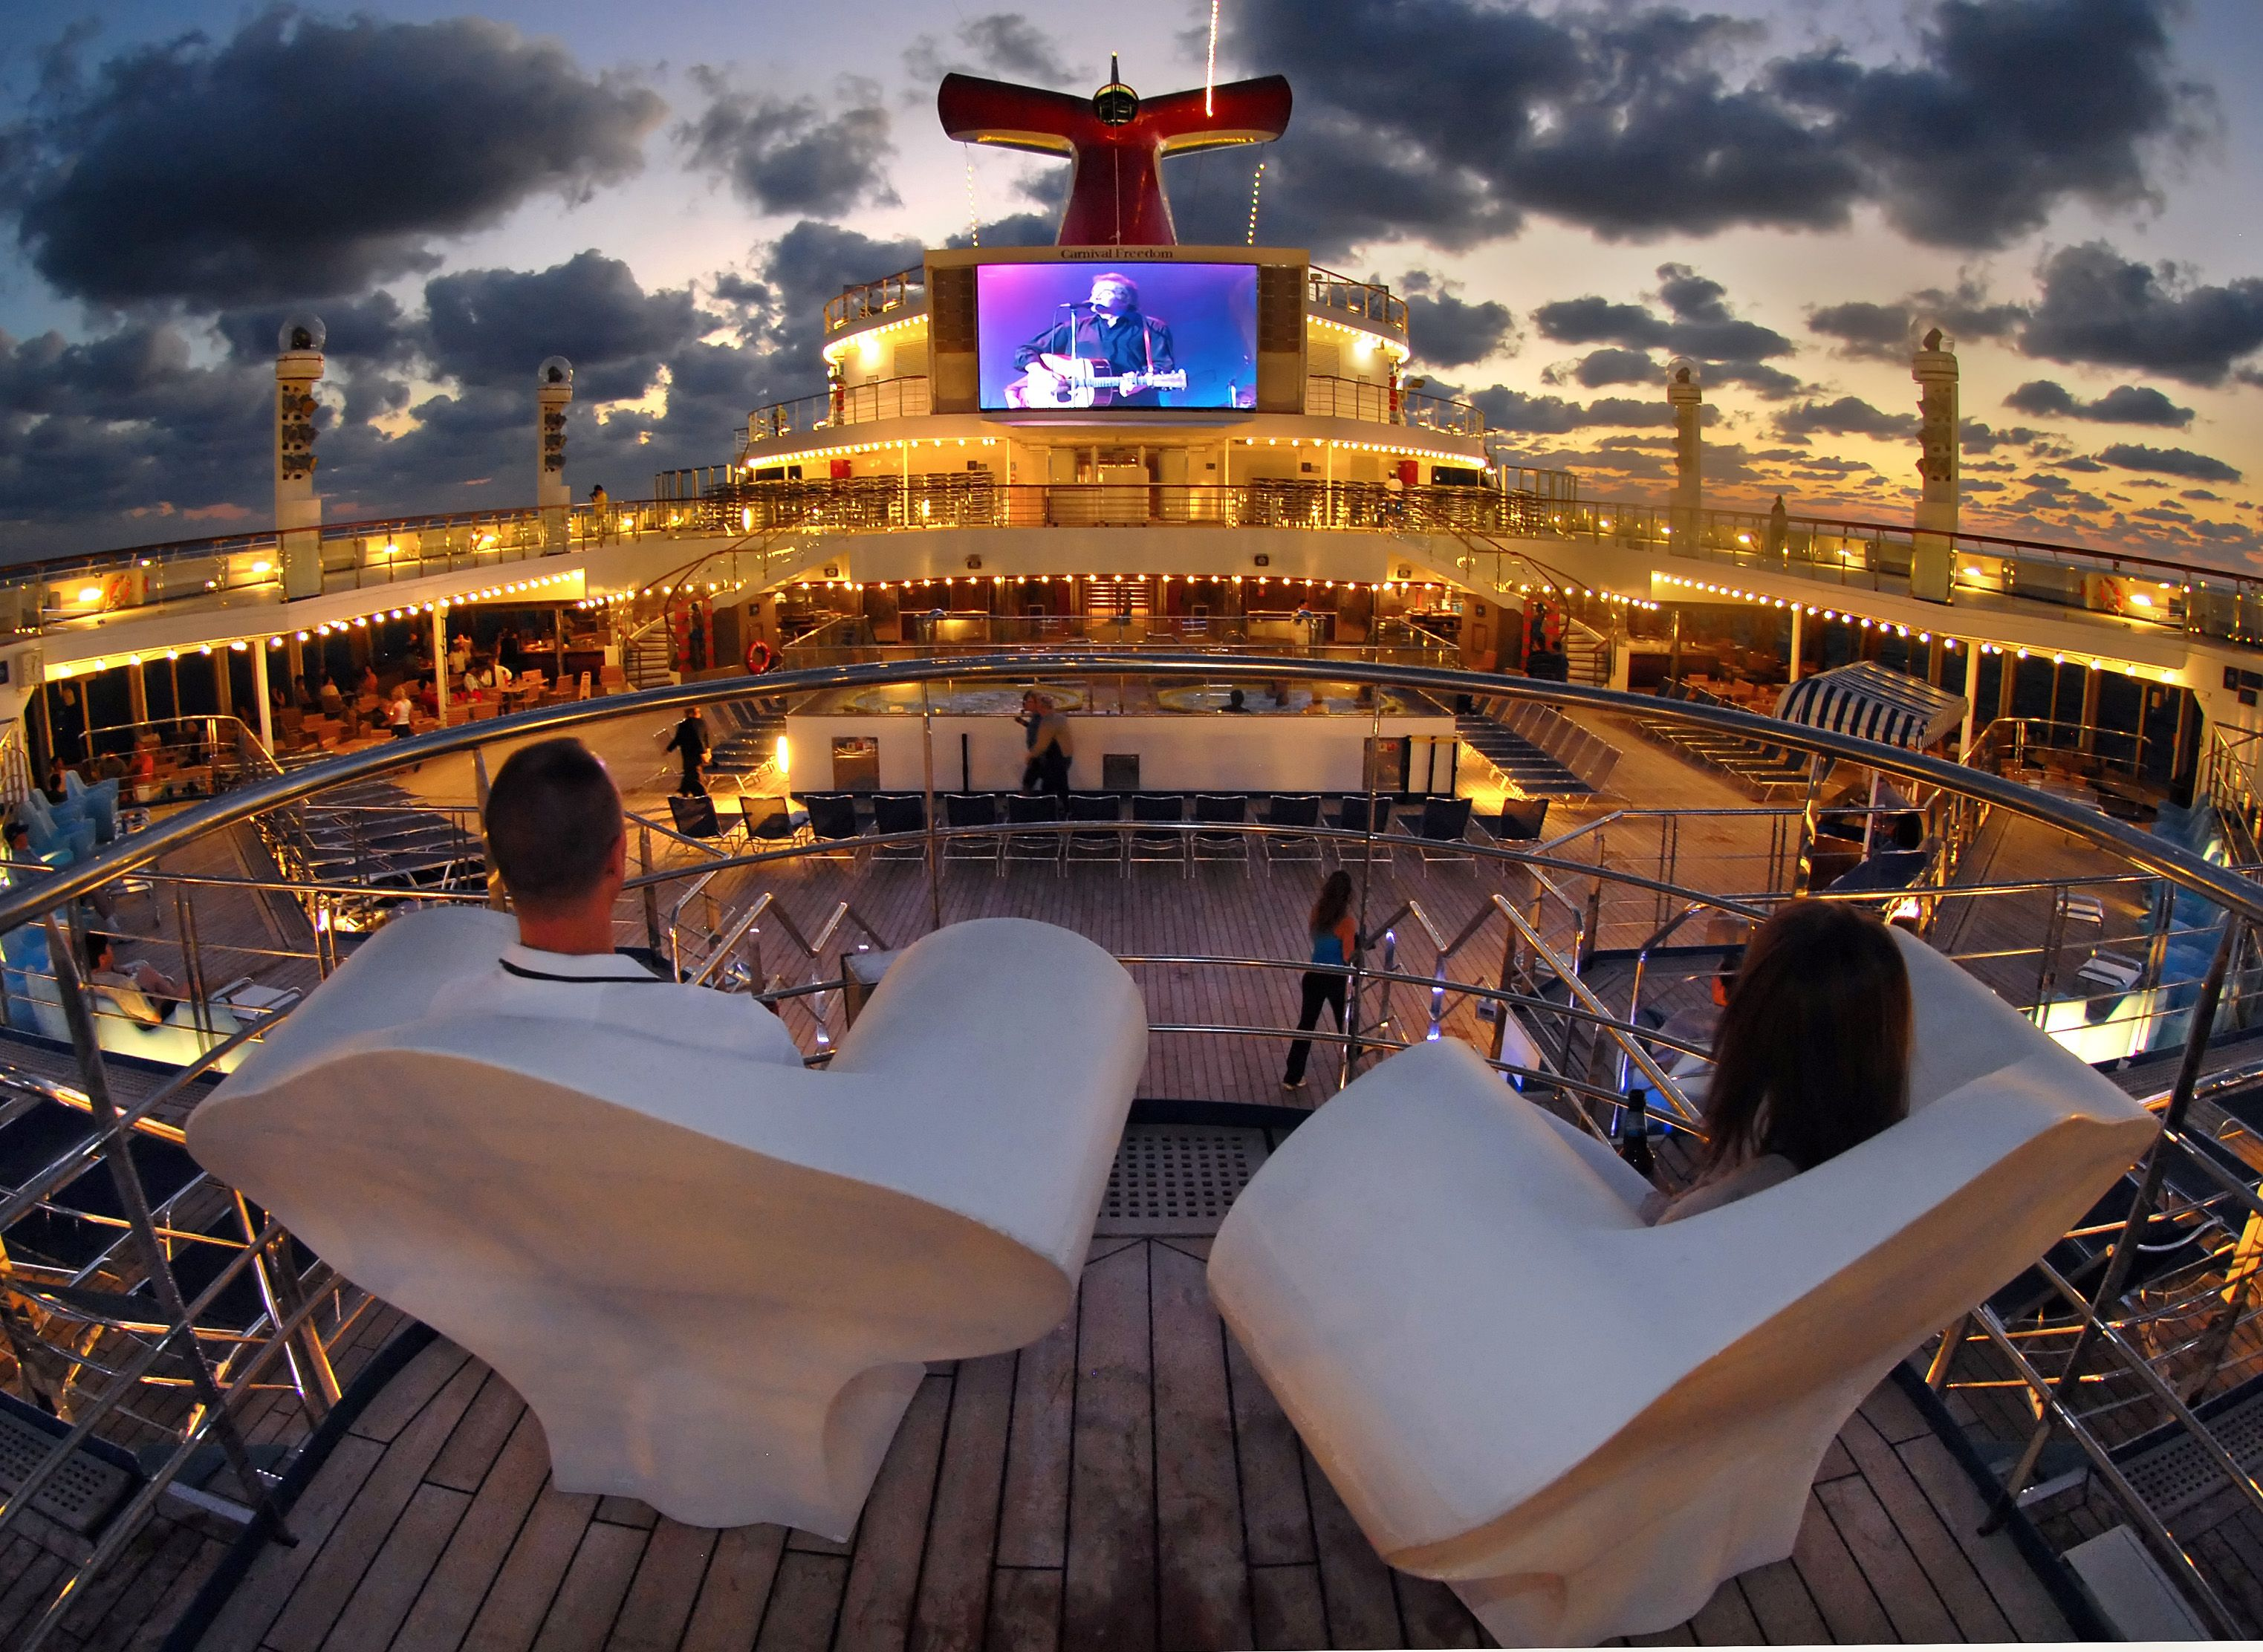 Images Of Cruise Ships By Now Most Of Us Know About The Cruise - Cruise ship facilities and amenities